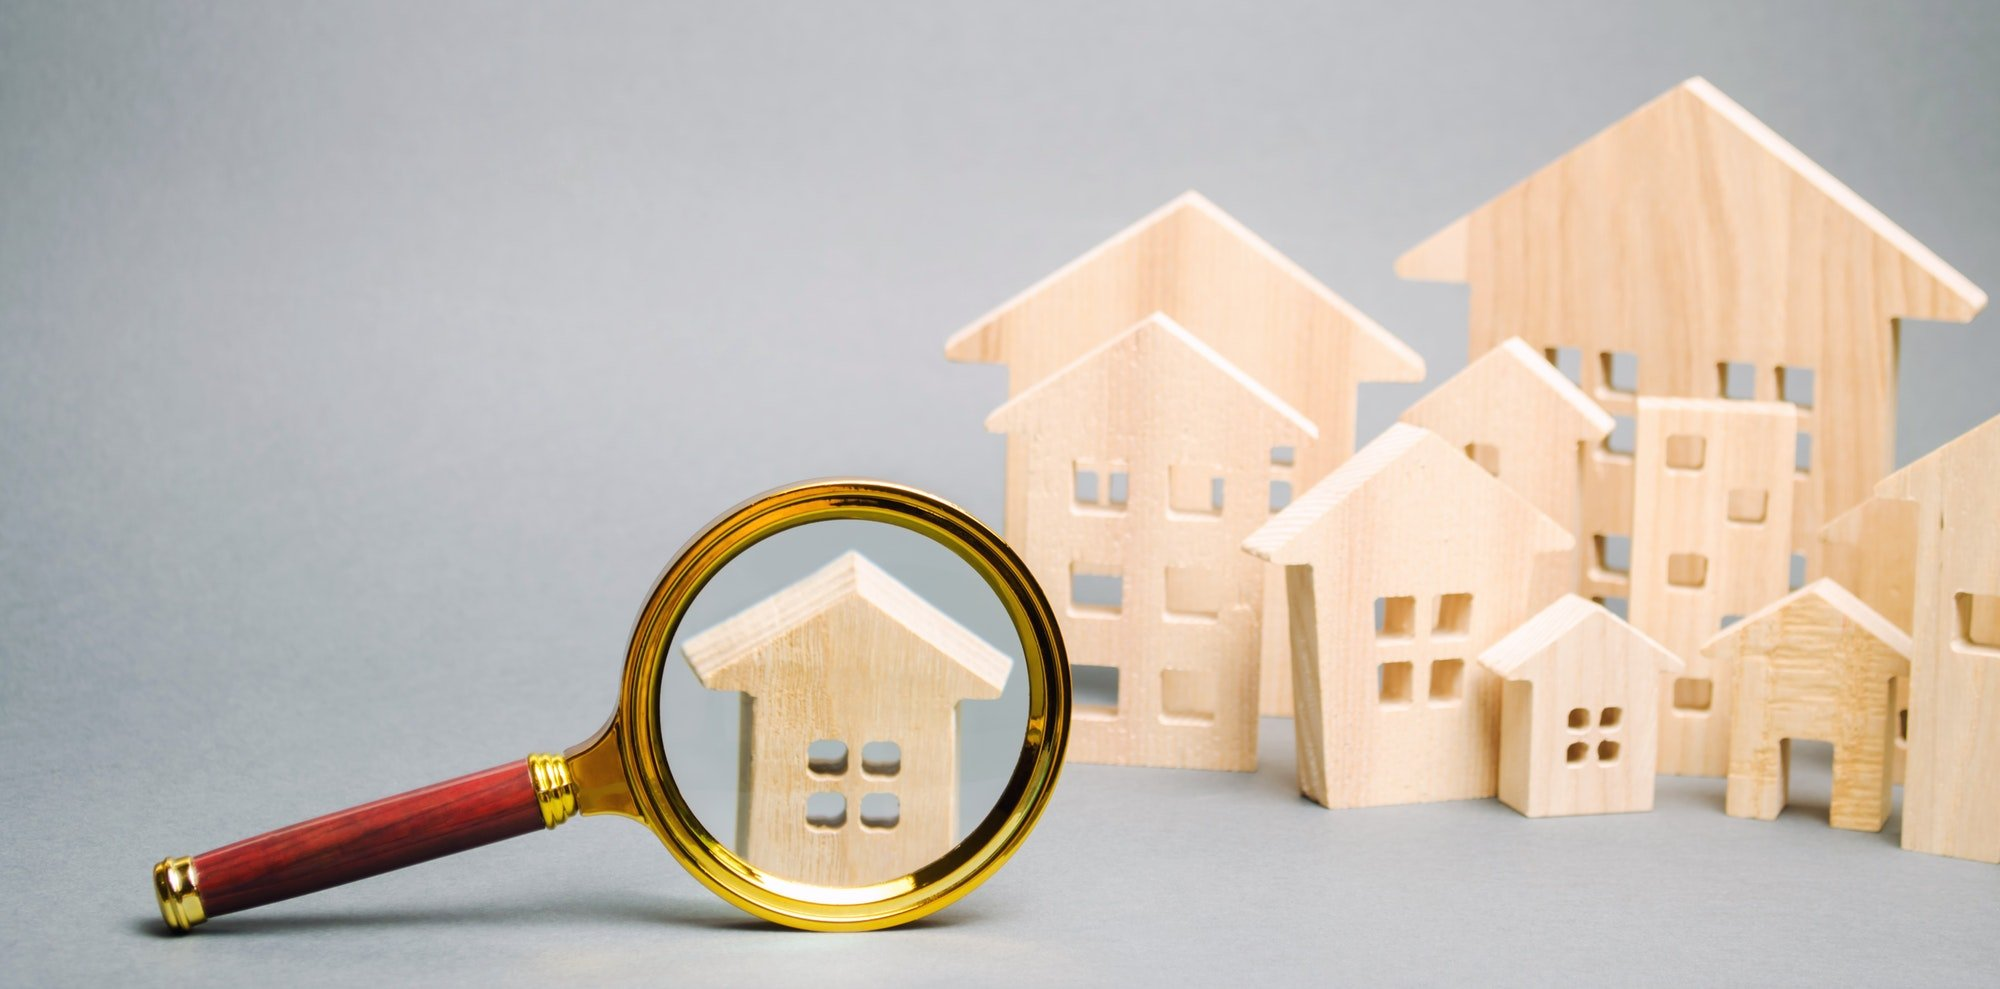 Magnifying glass and wooden houses